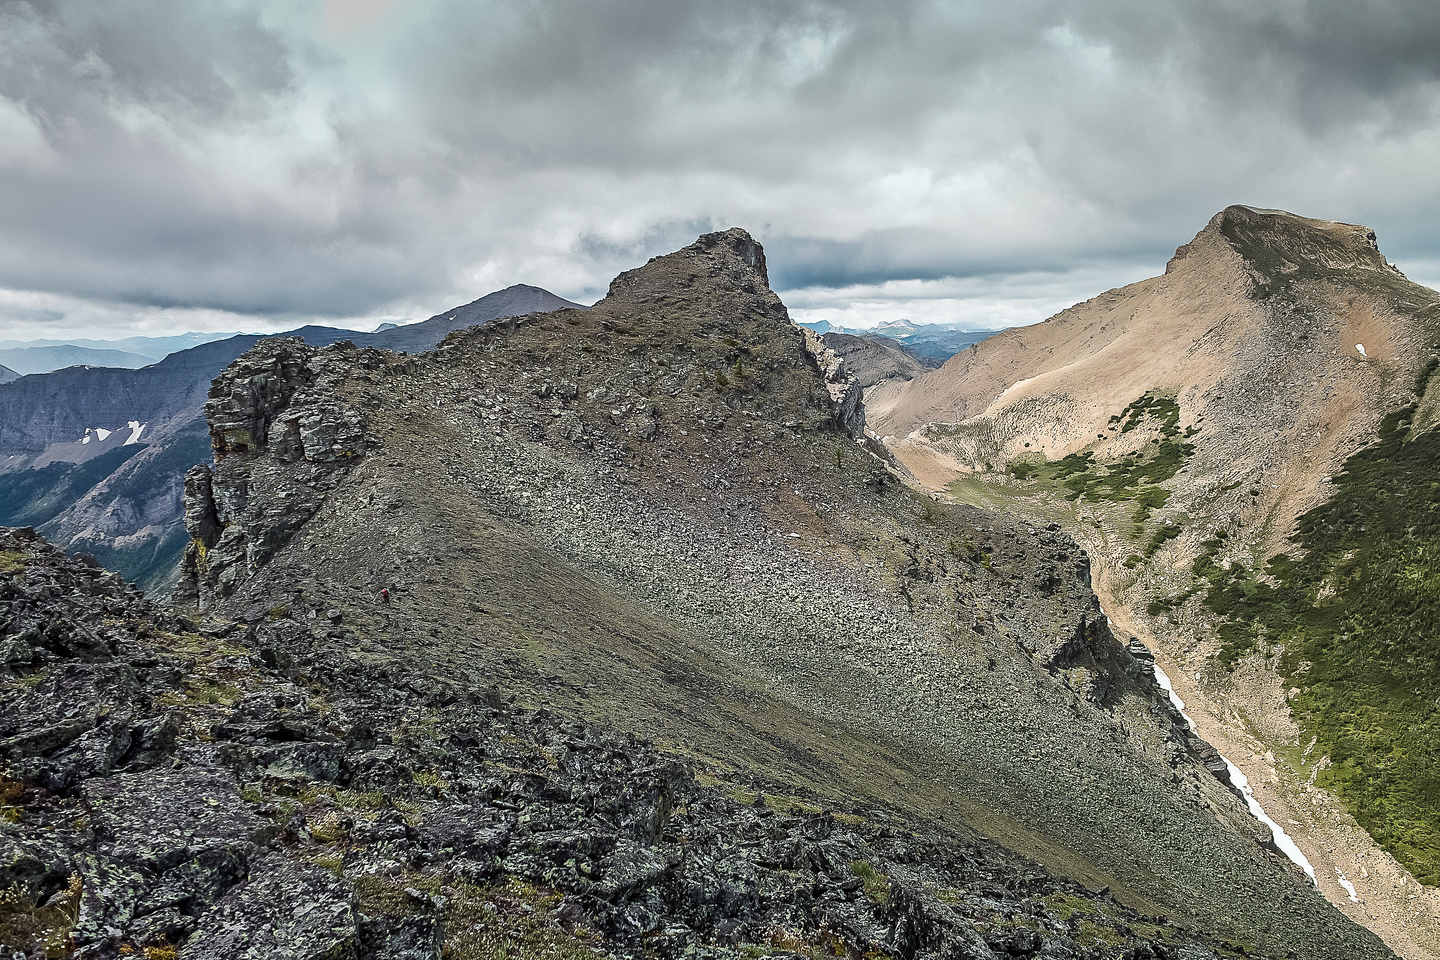 Starting our traverse to St. Eloi - the first obstacle is a pinnacle on the ridge between the east and south summit.